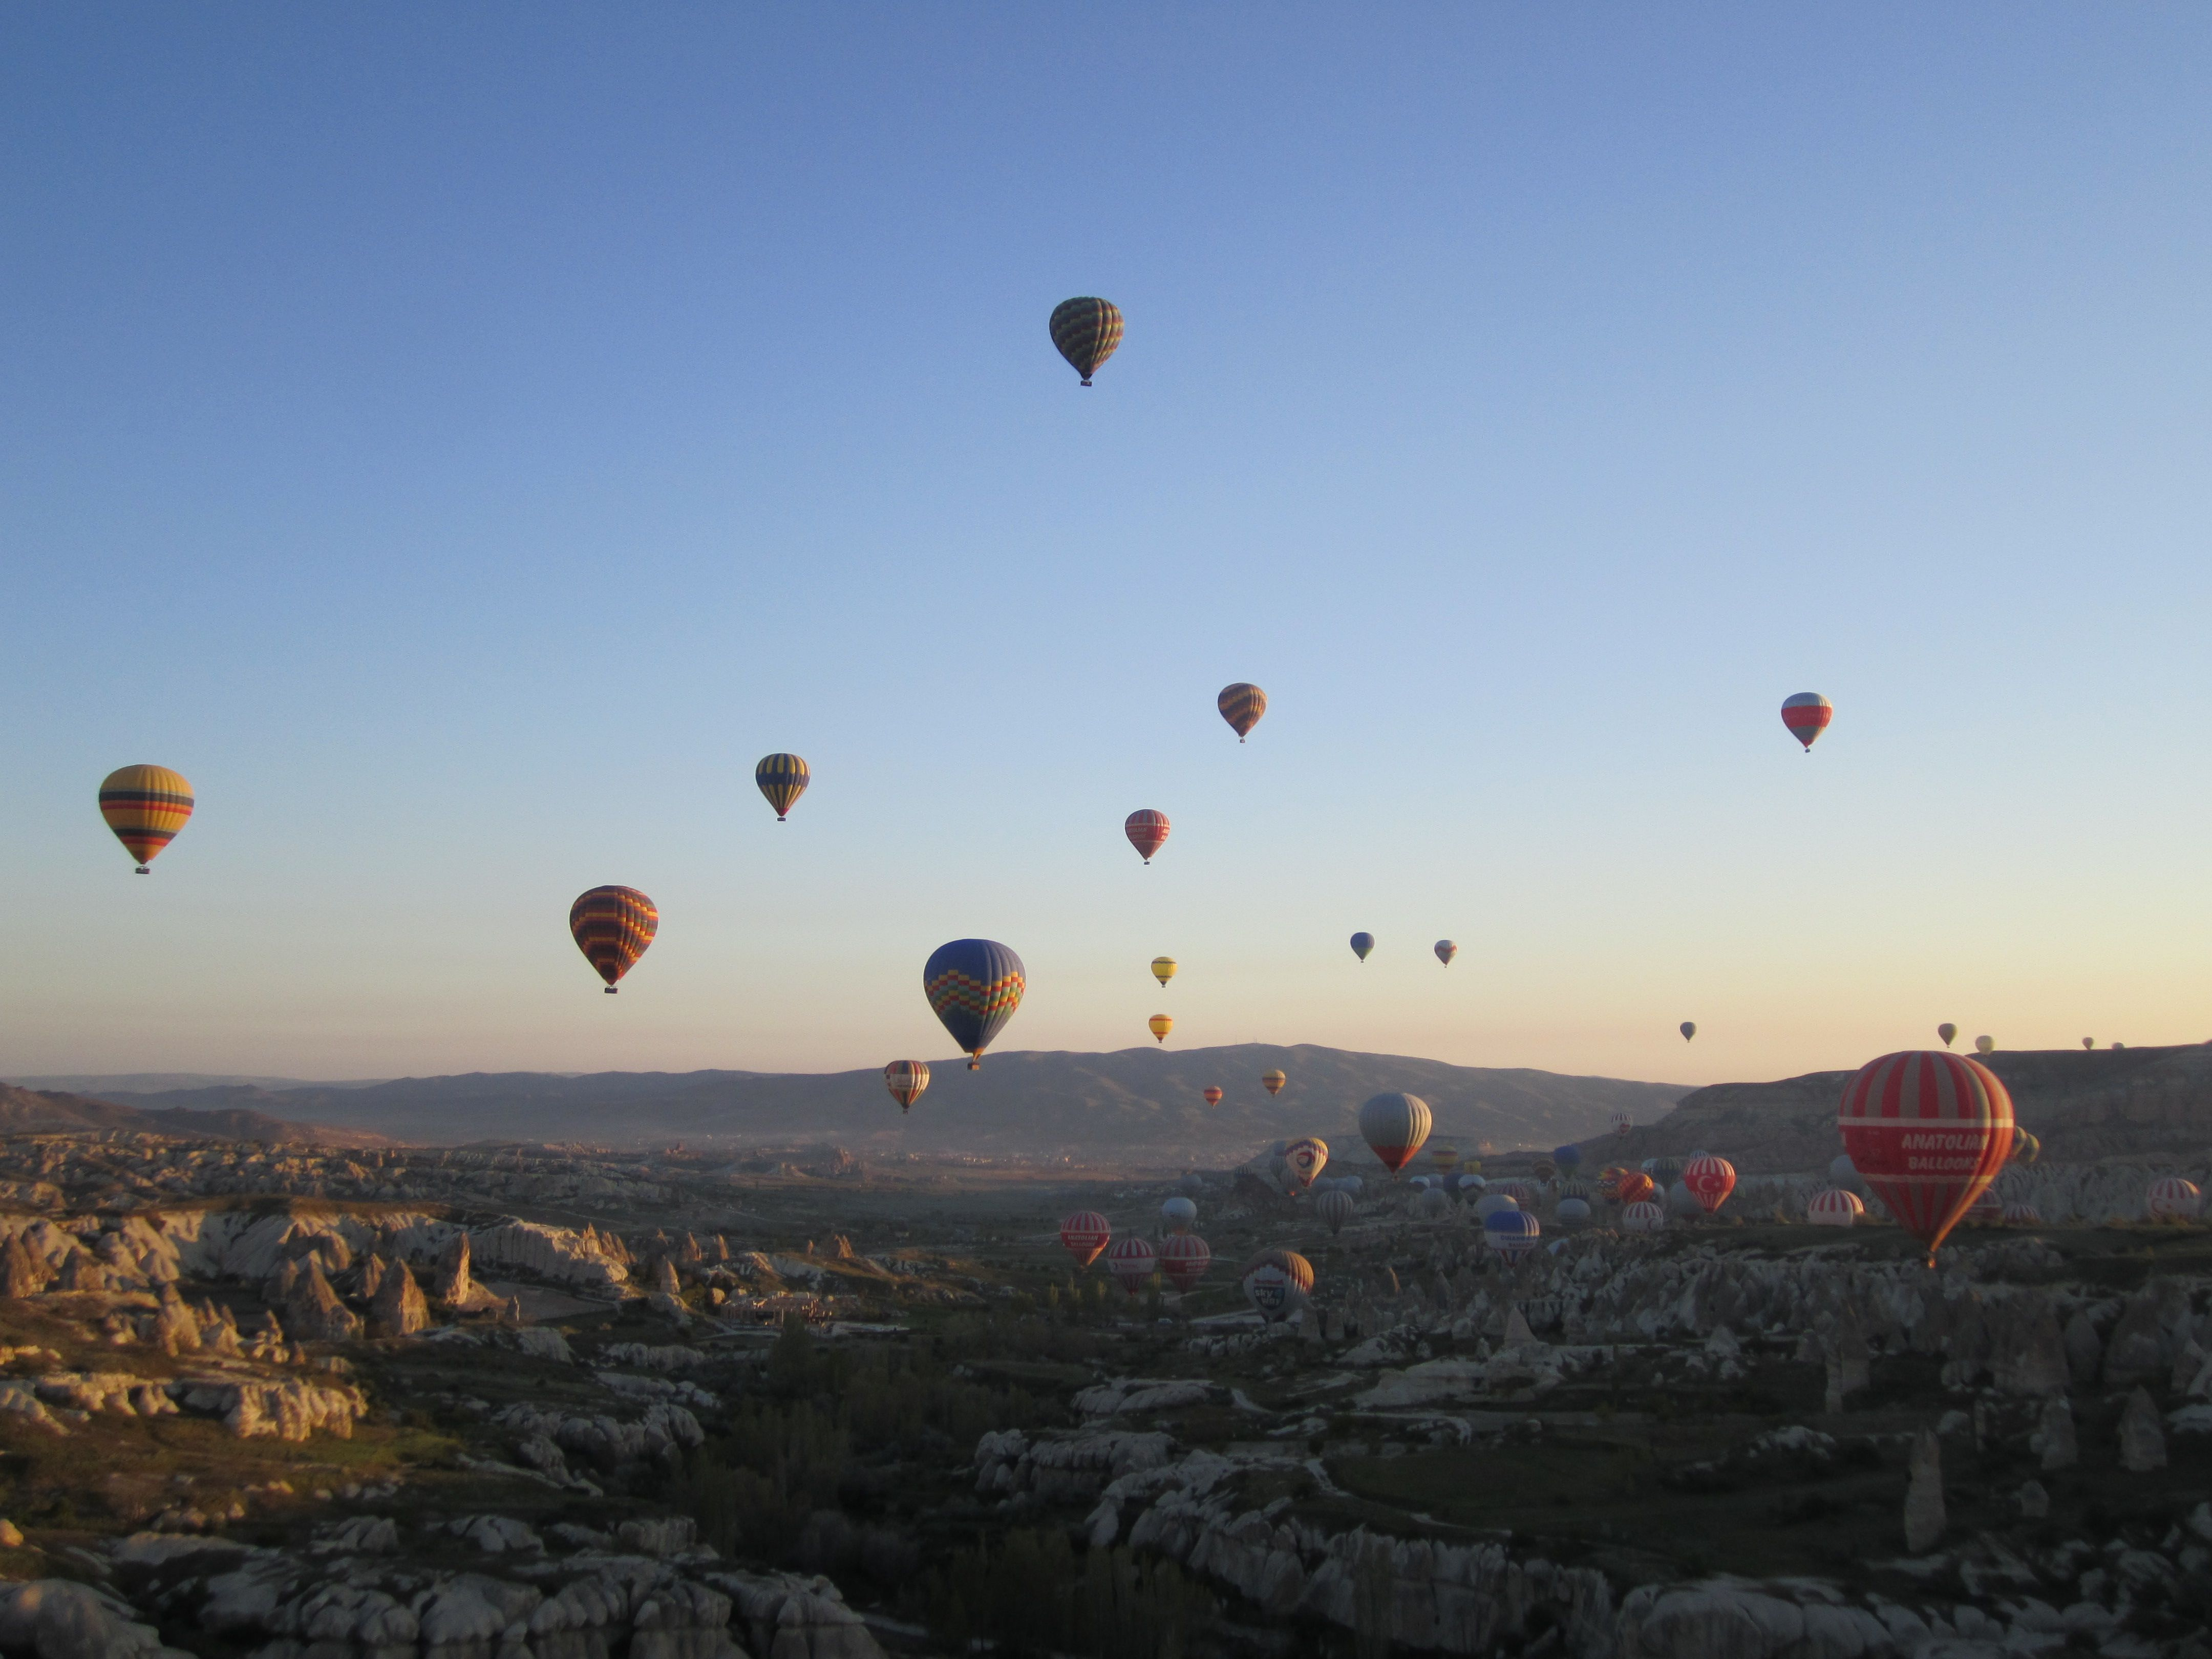 Harnessing The Hot Air Put Off By An Intense Flame That Is Direction Into The Balloon Facilitates A Pretty Amazing Expe Built Environment Ways To Travel Warmth